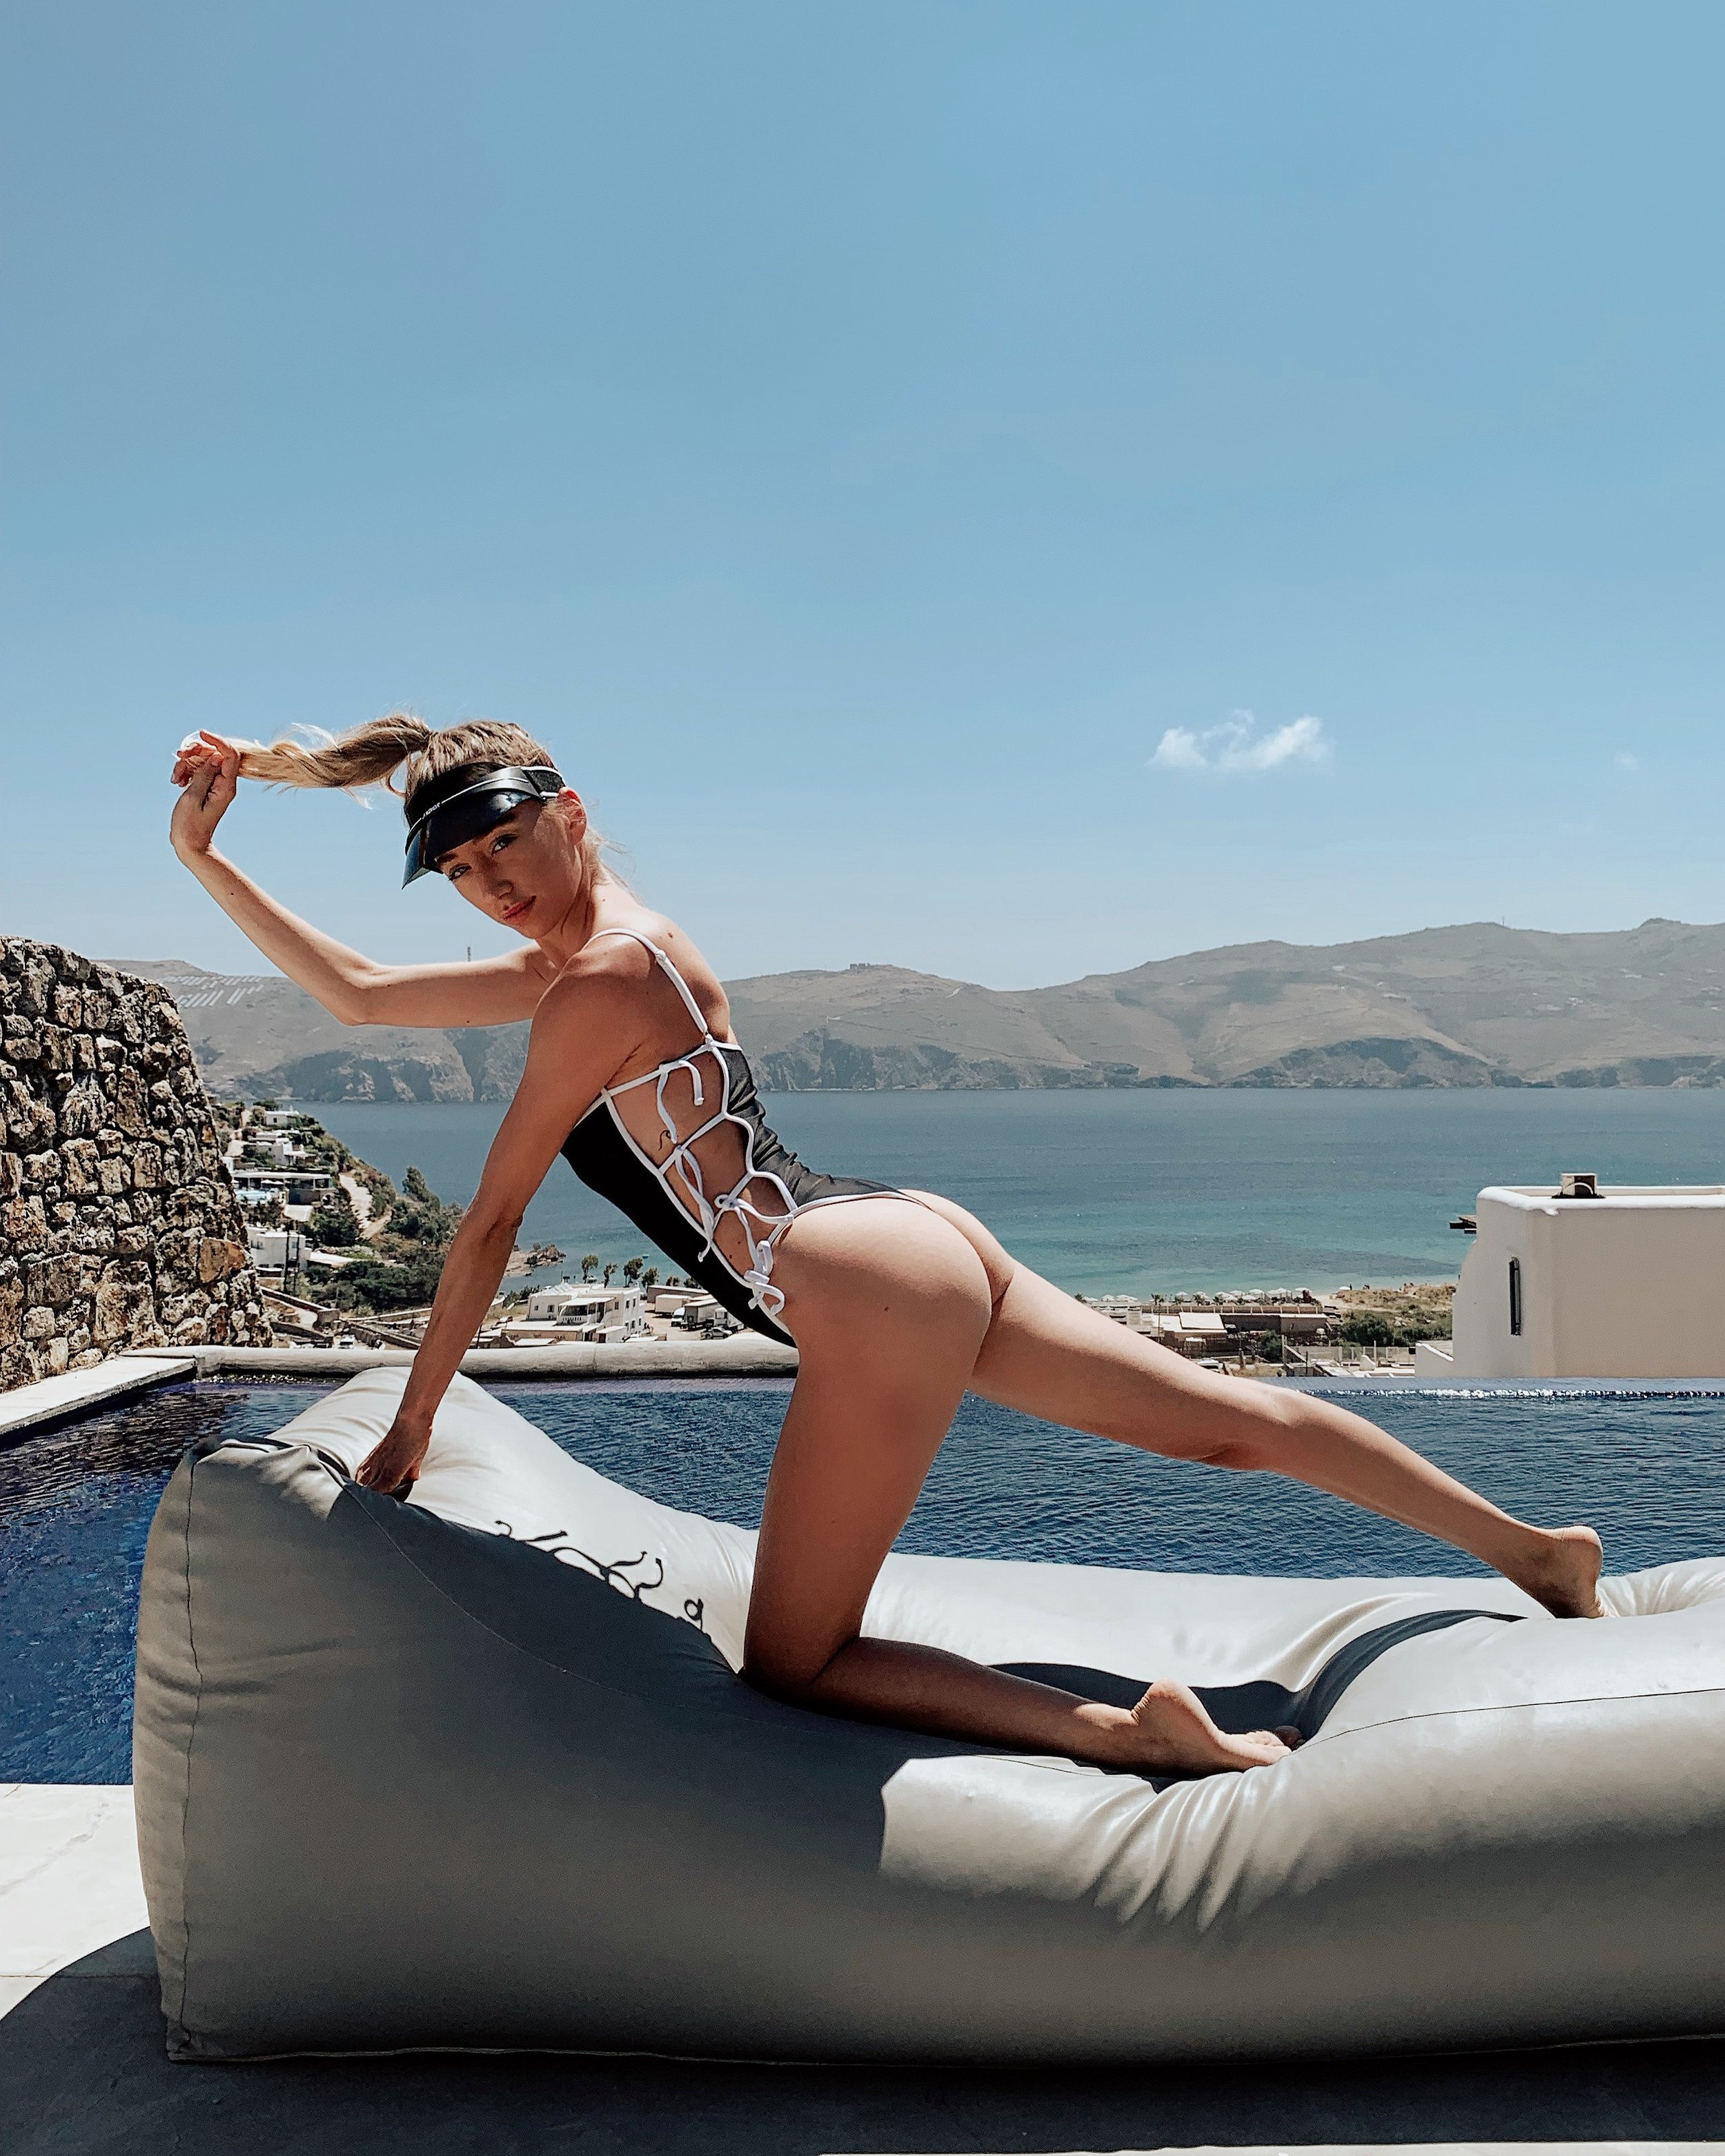 Also, here is me being XTRA in @gigicbikinis at our villa LOL.